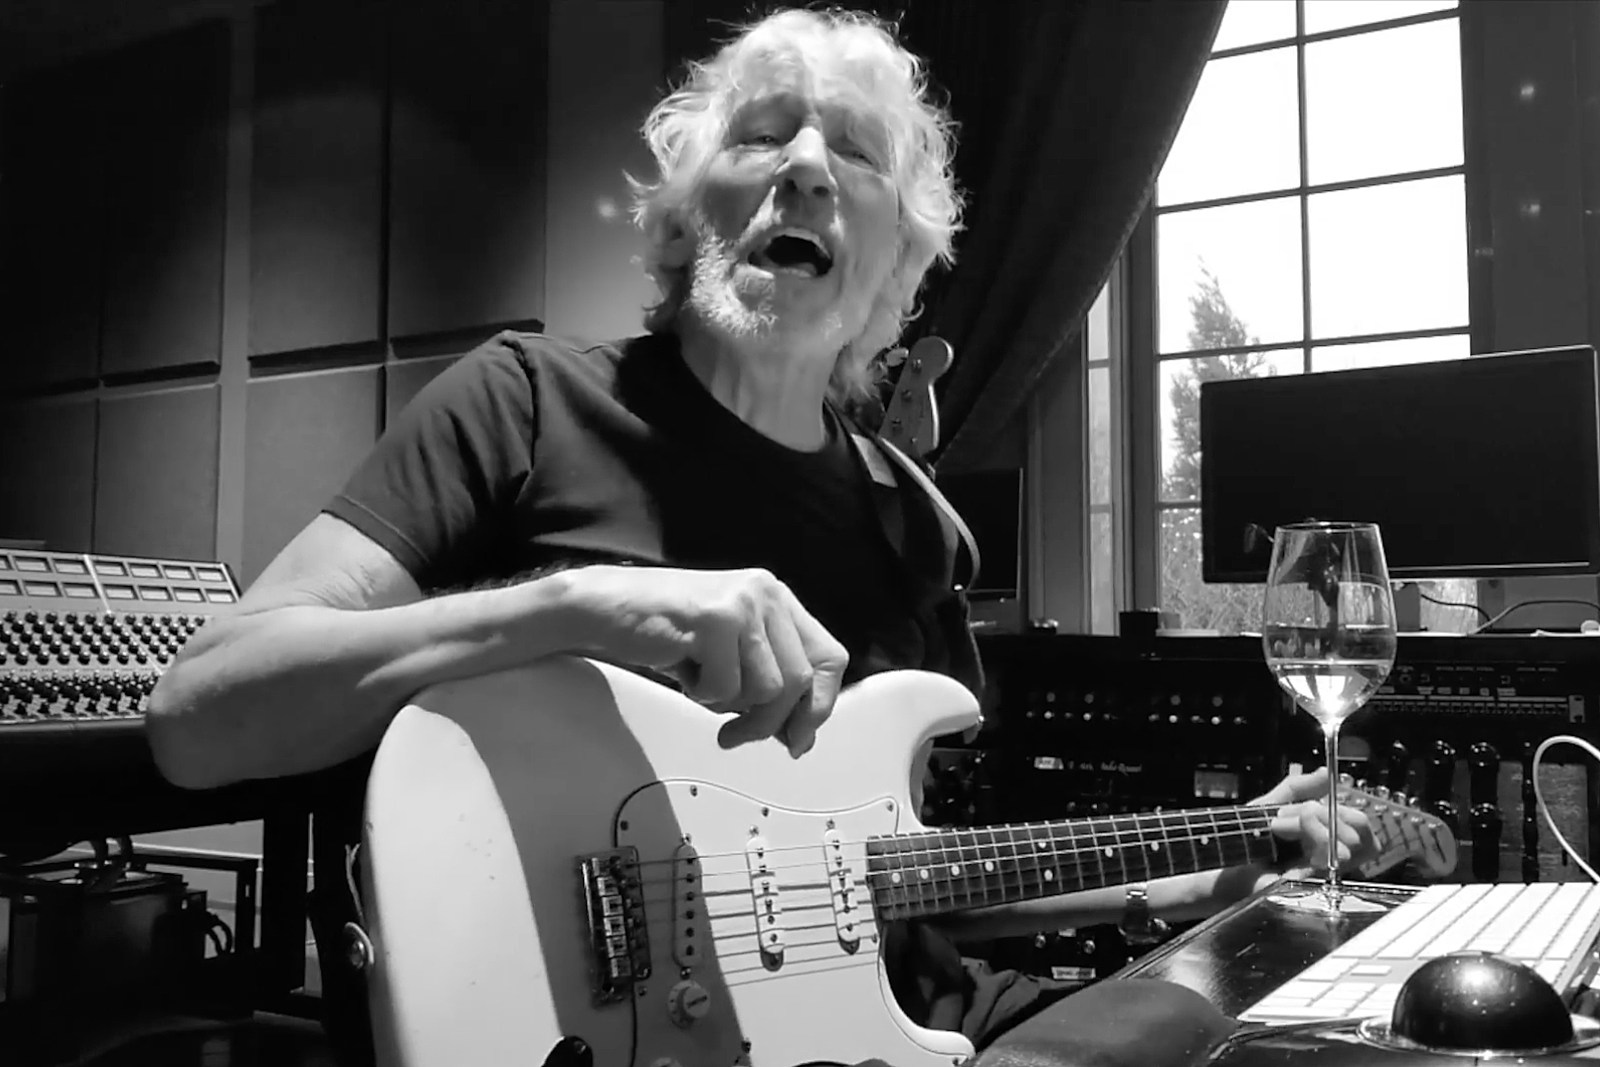 Roger Waters Covers Protest Anthem, Adds Lyrics Directed at Trump